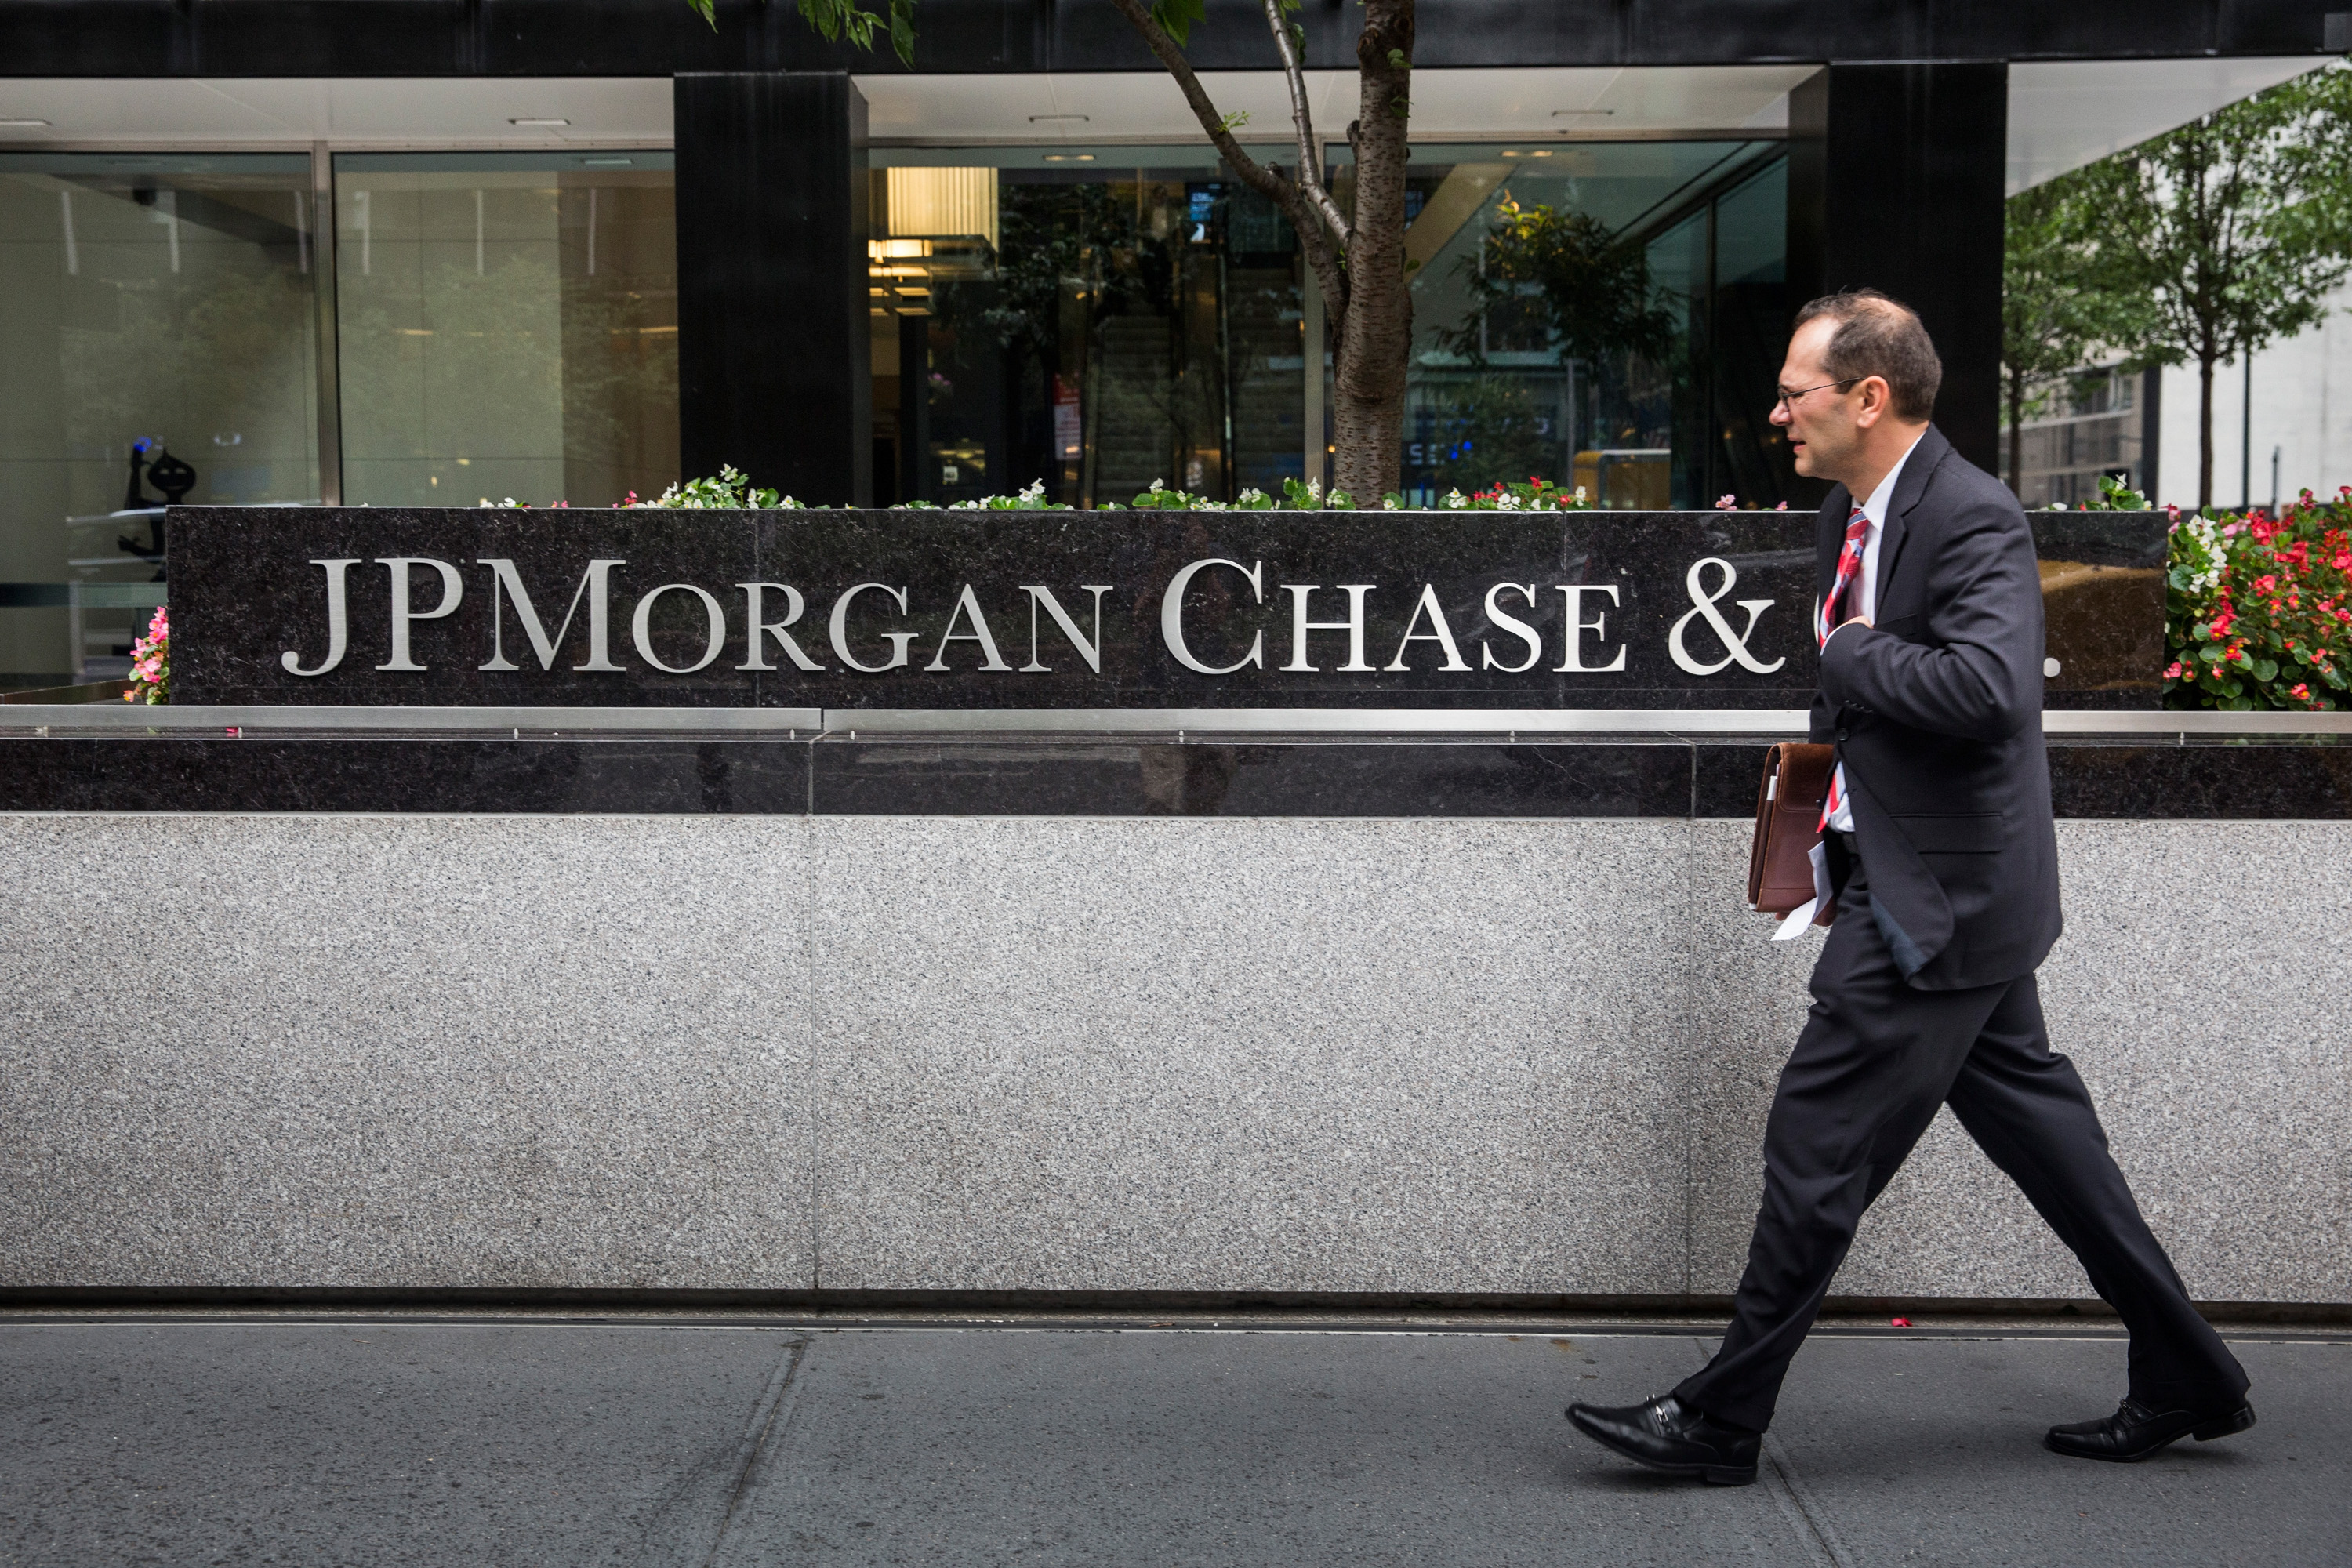 A man walks past JP Morgan Chase's corporate headquarters on August 12, 2014 in New York City.